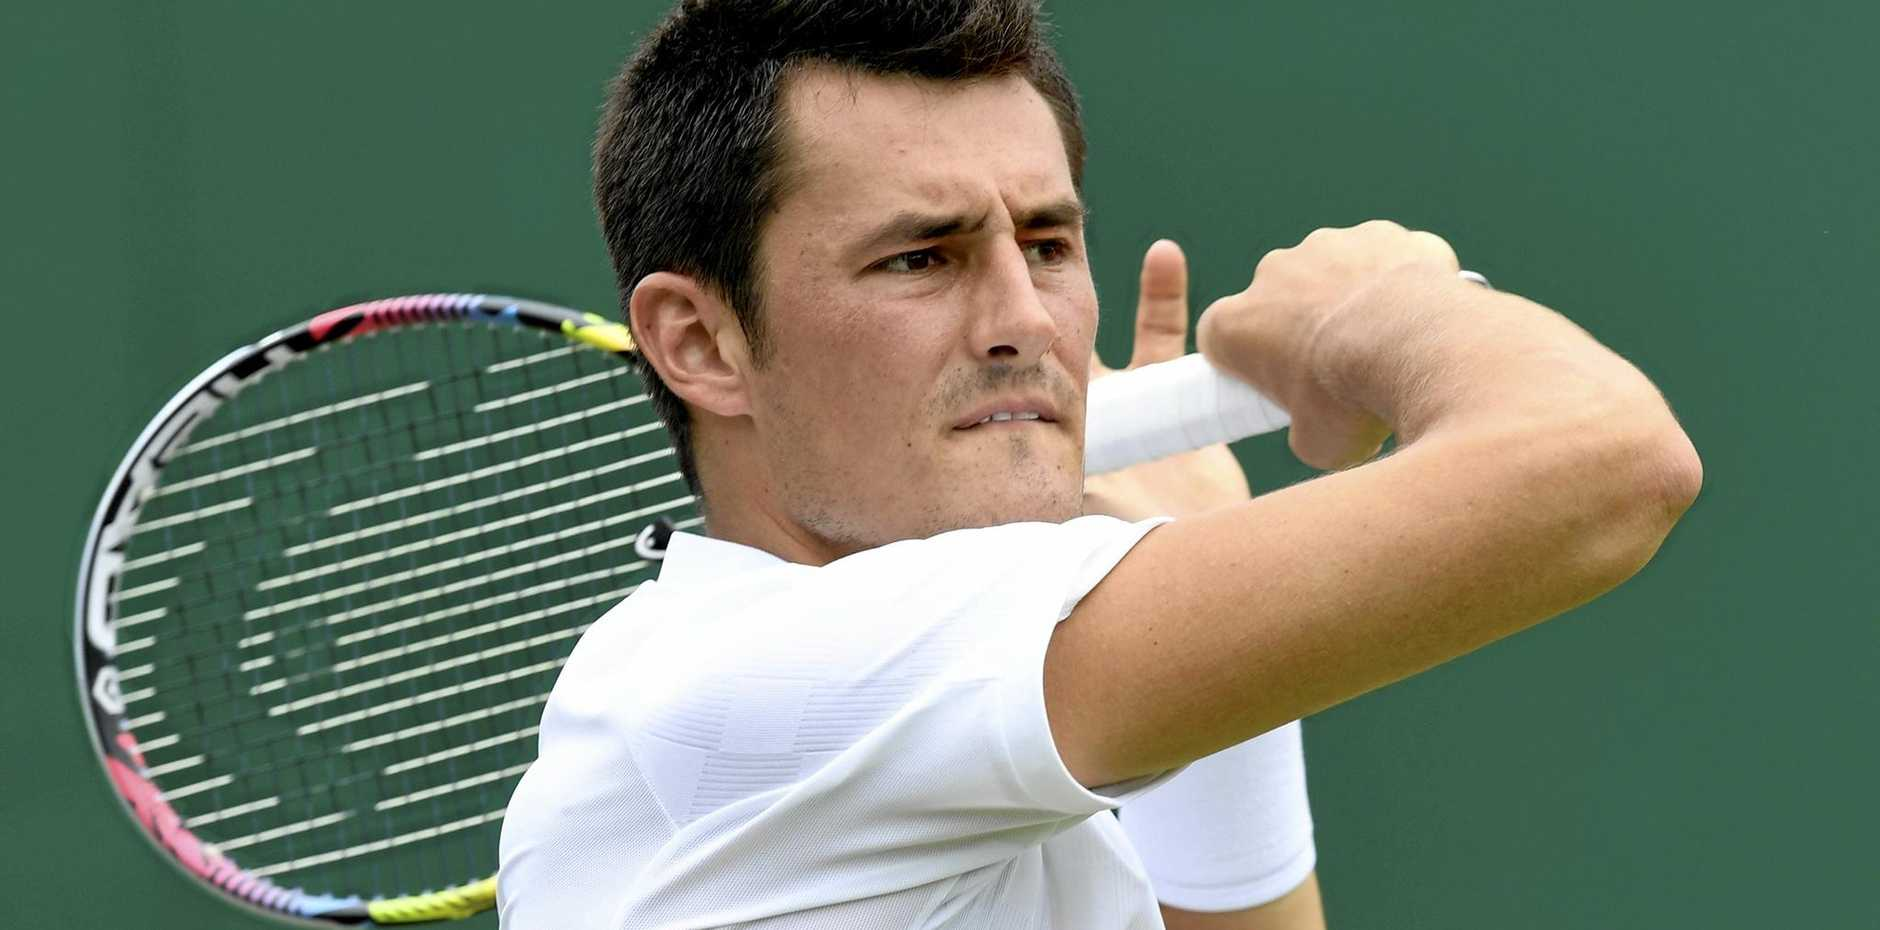 Bernard Tomic in action against Mischa Zverev at the All England Lawn Tennis Club